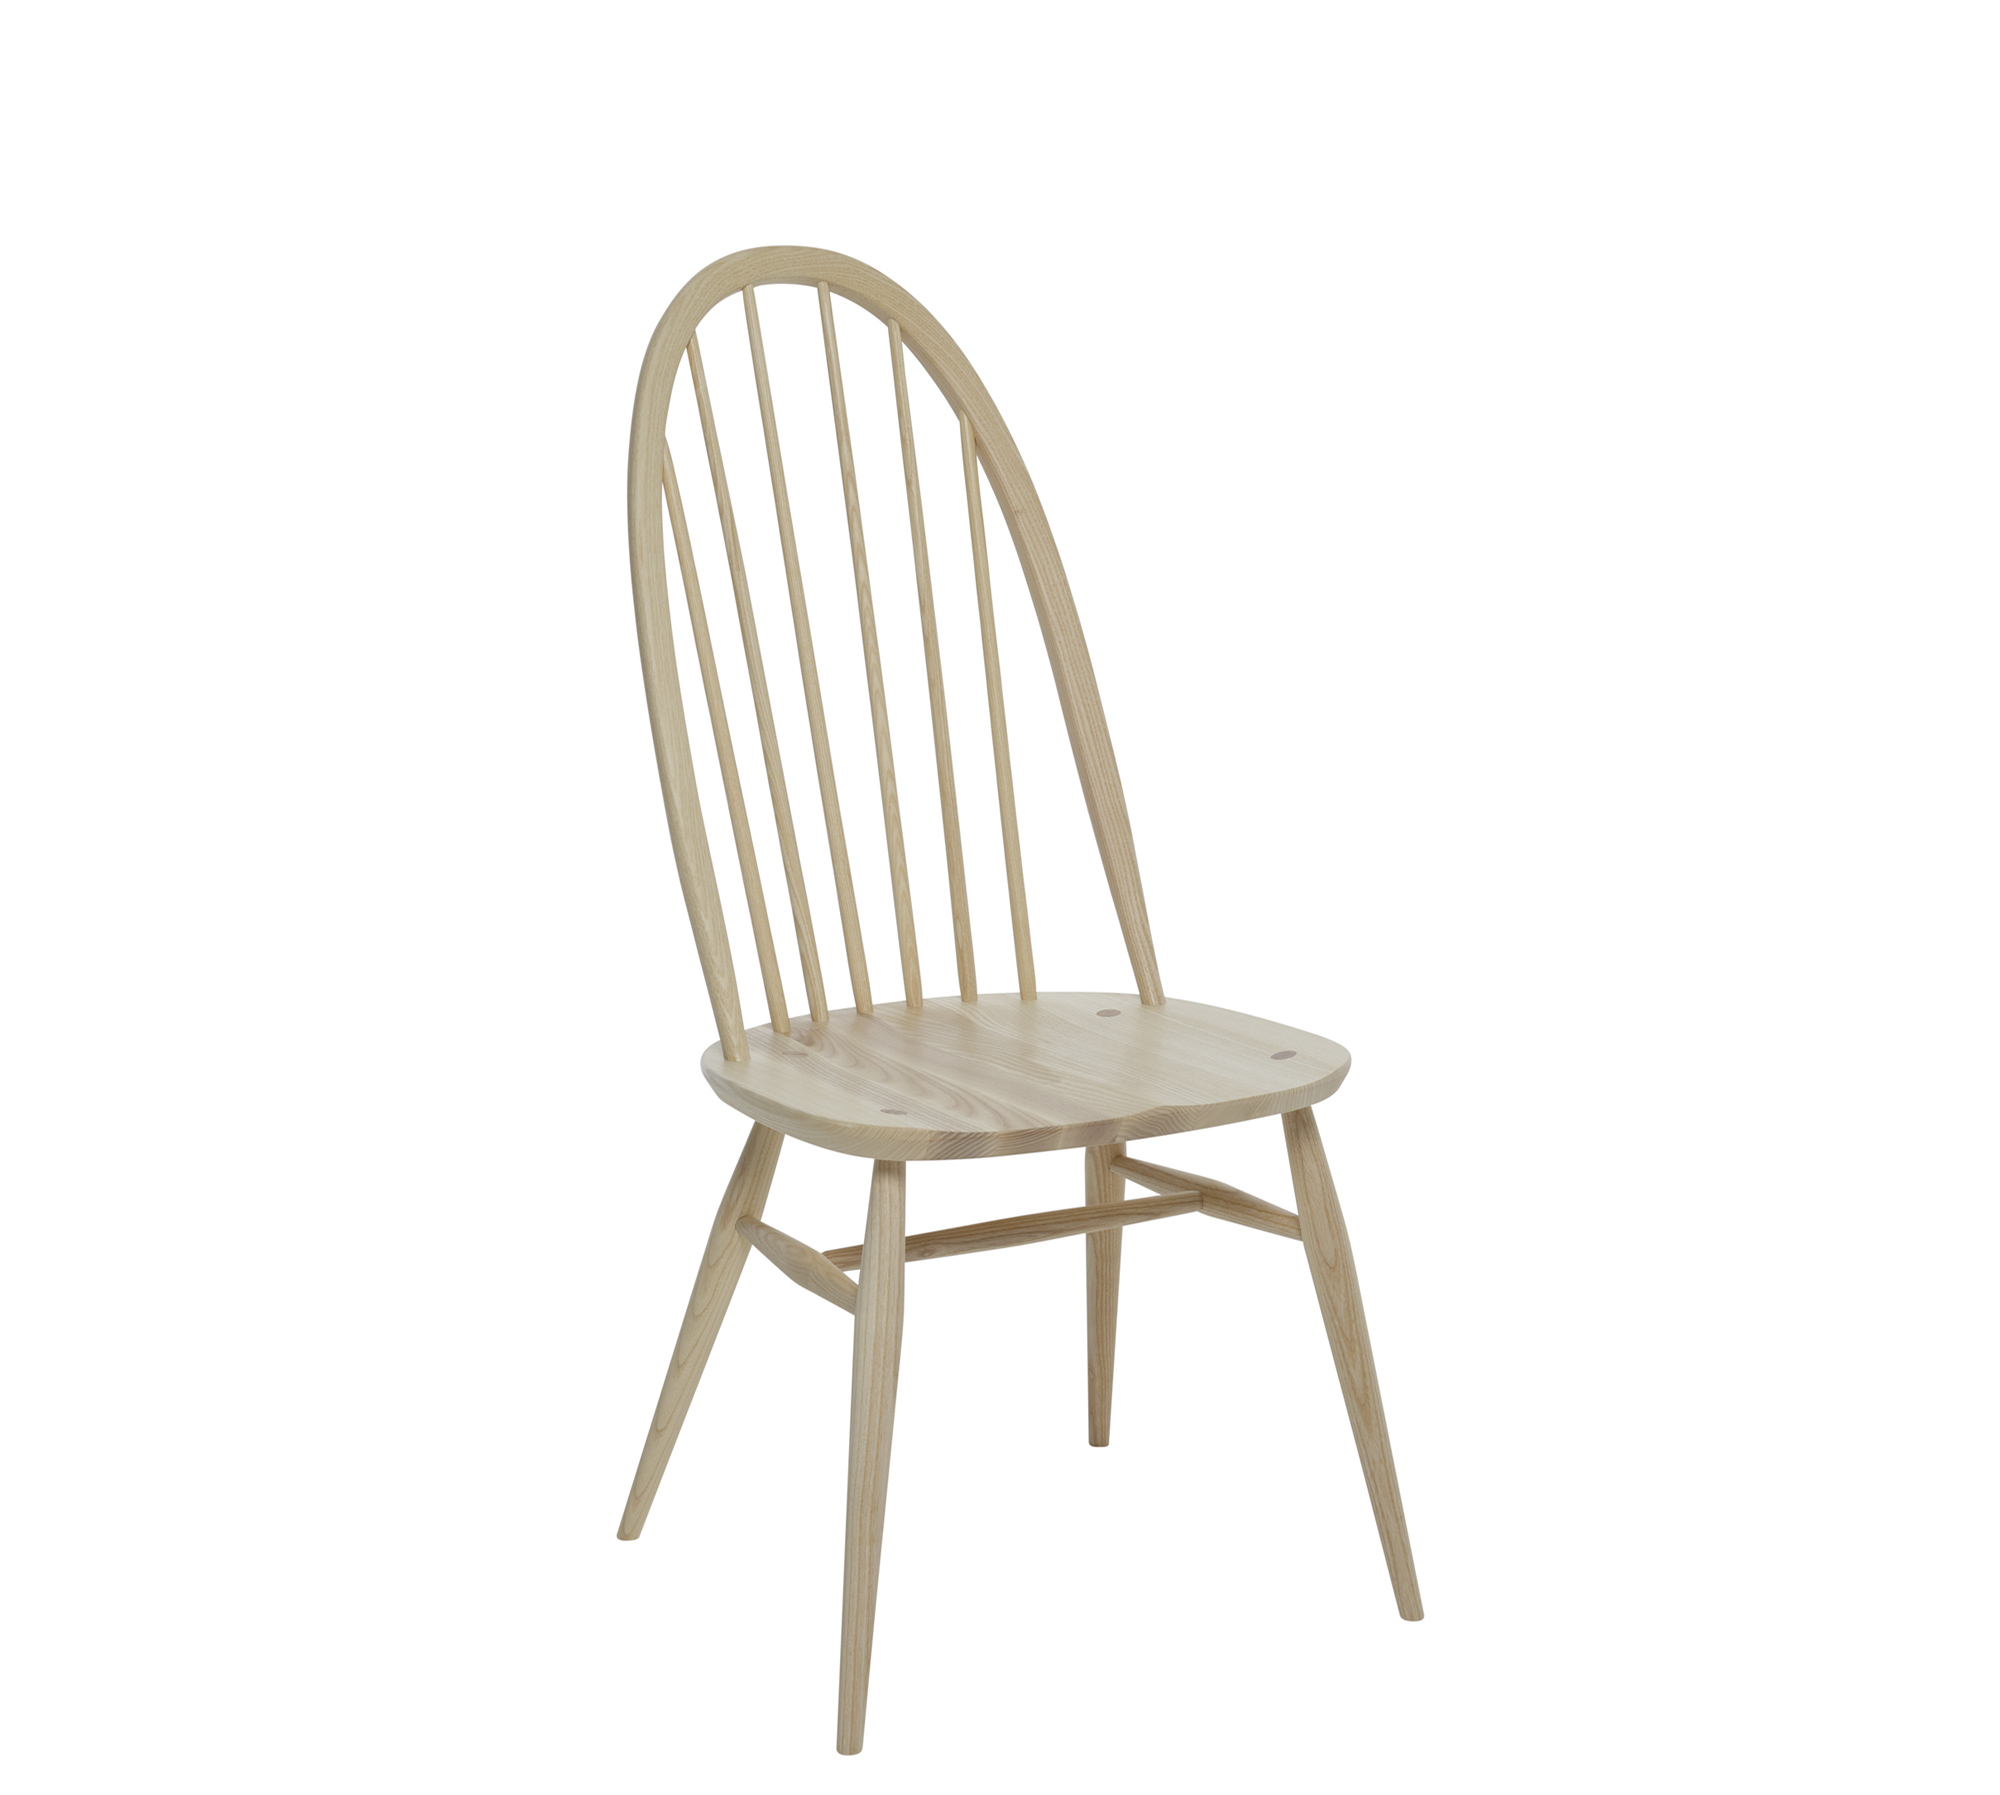 Windsor Quaker Dining Chair Dining Chairs Ercol Furniture